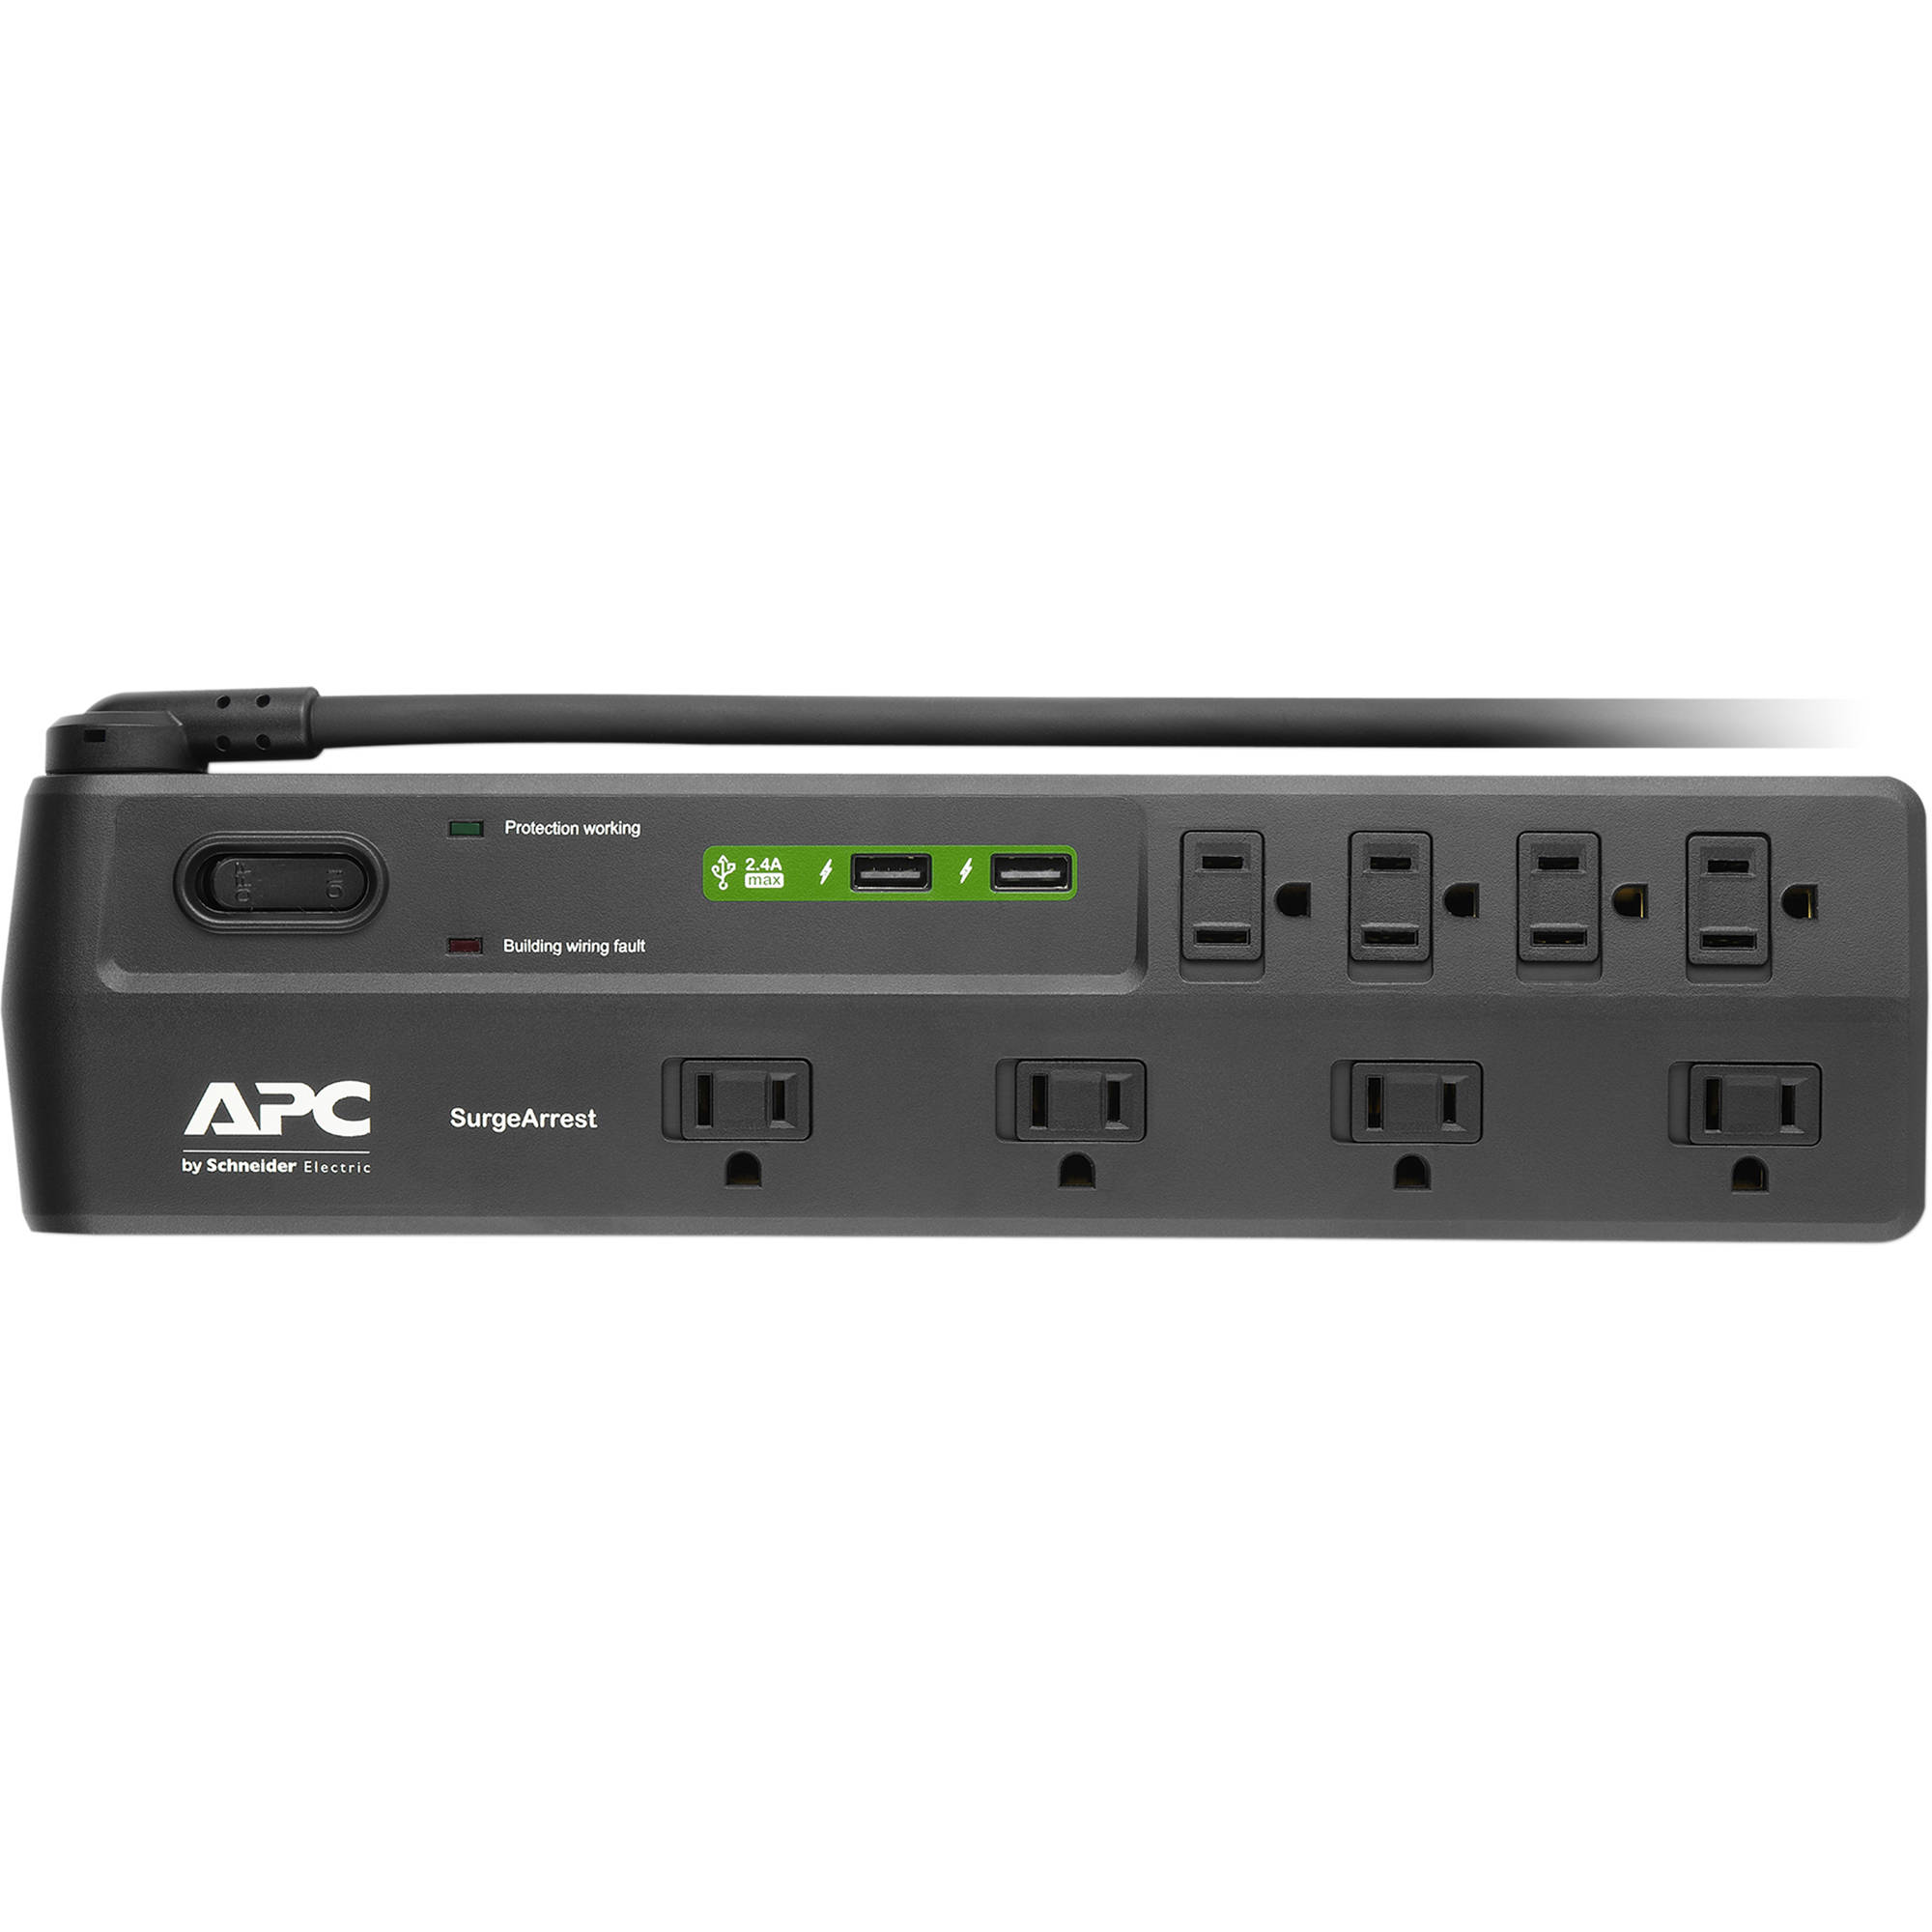 apc battery backup building wiring fault wiring diagram battery backup building wiring fault diagram